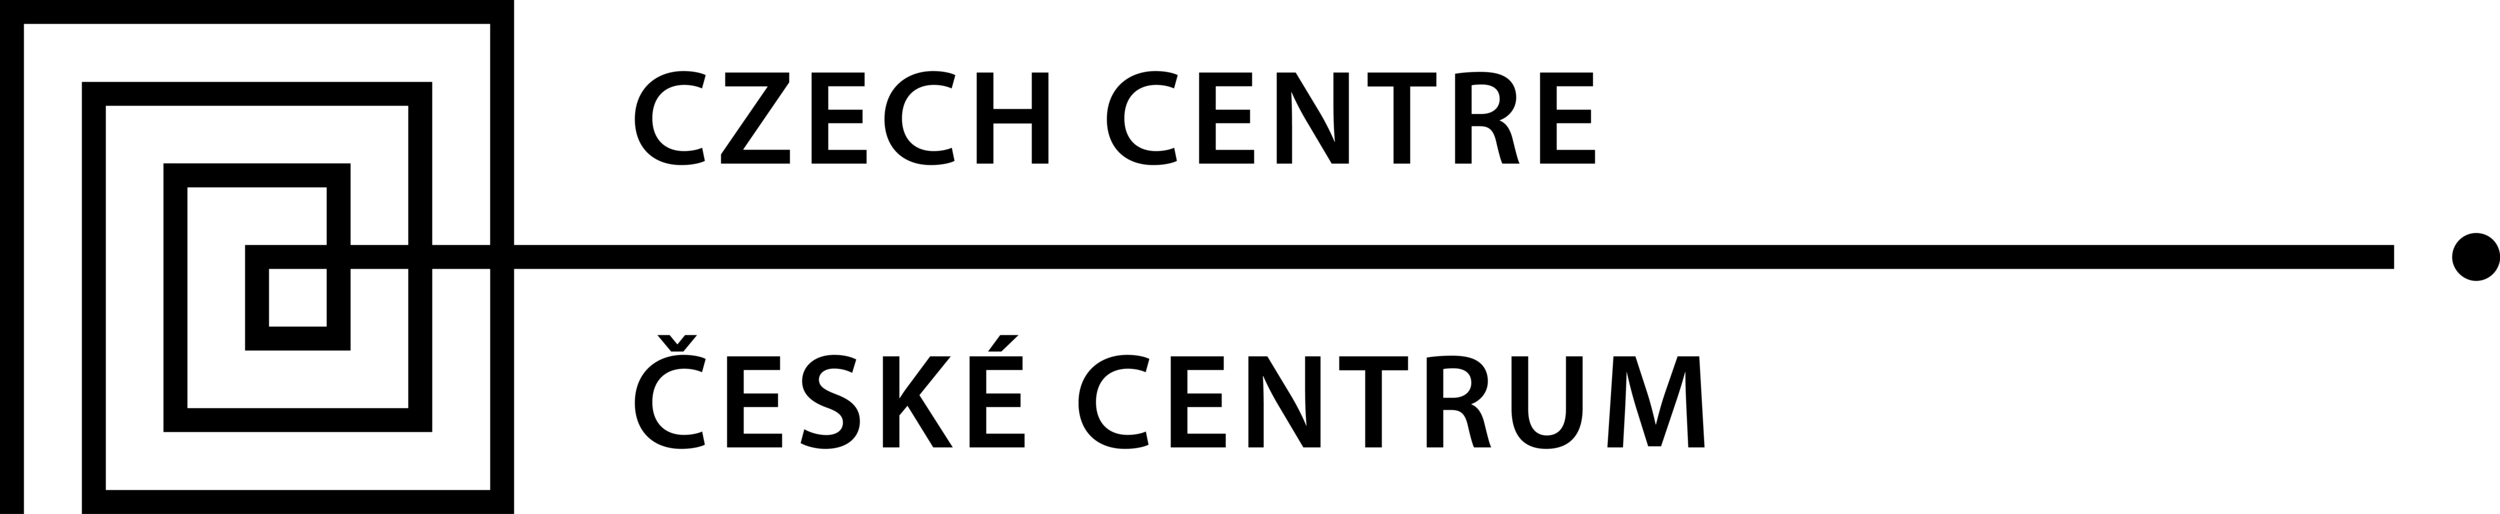 CCL logo - black - transparent.png